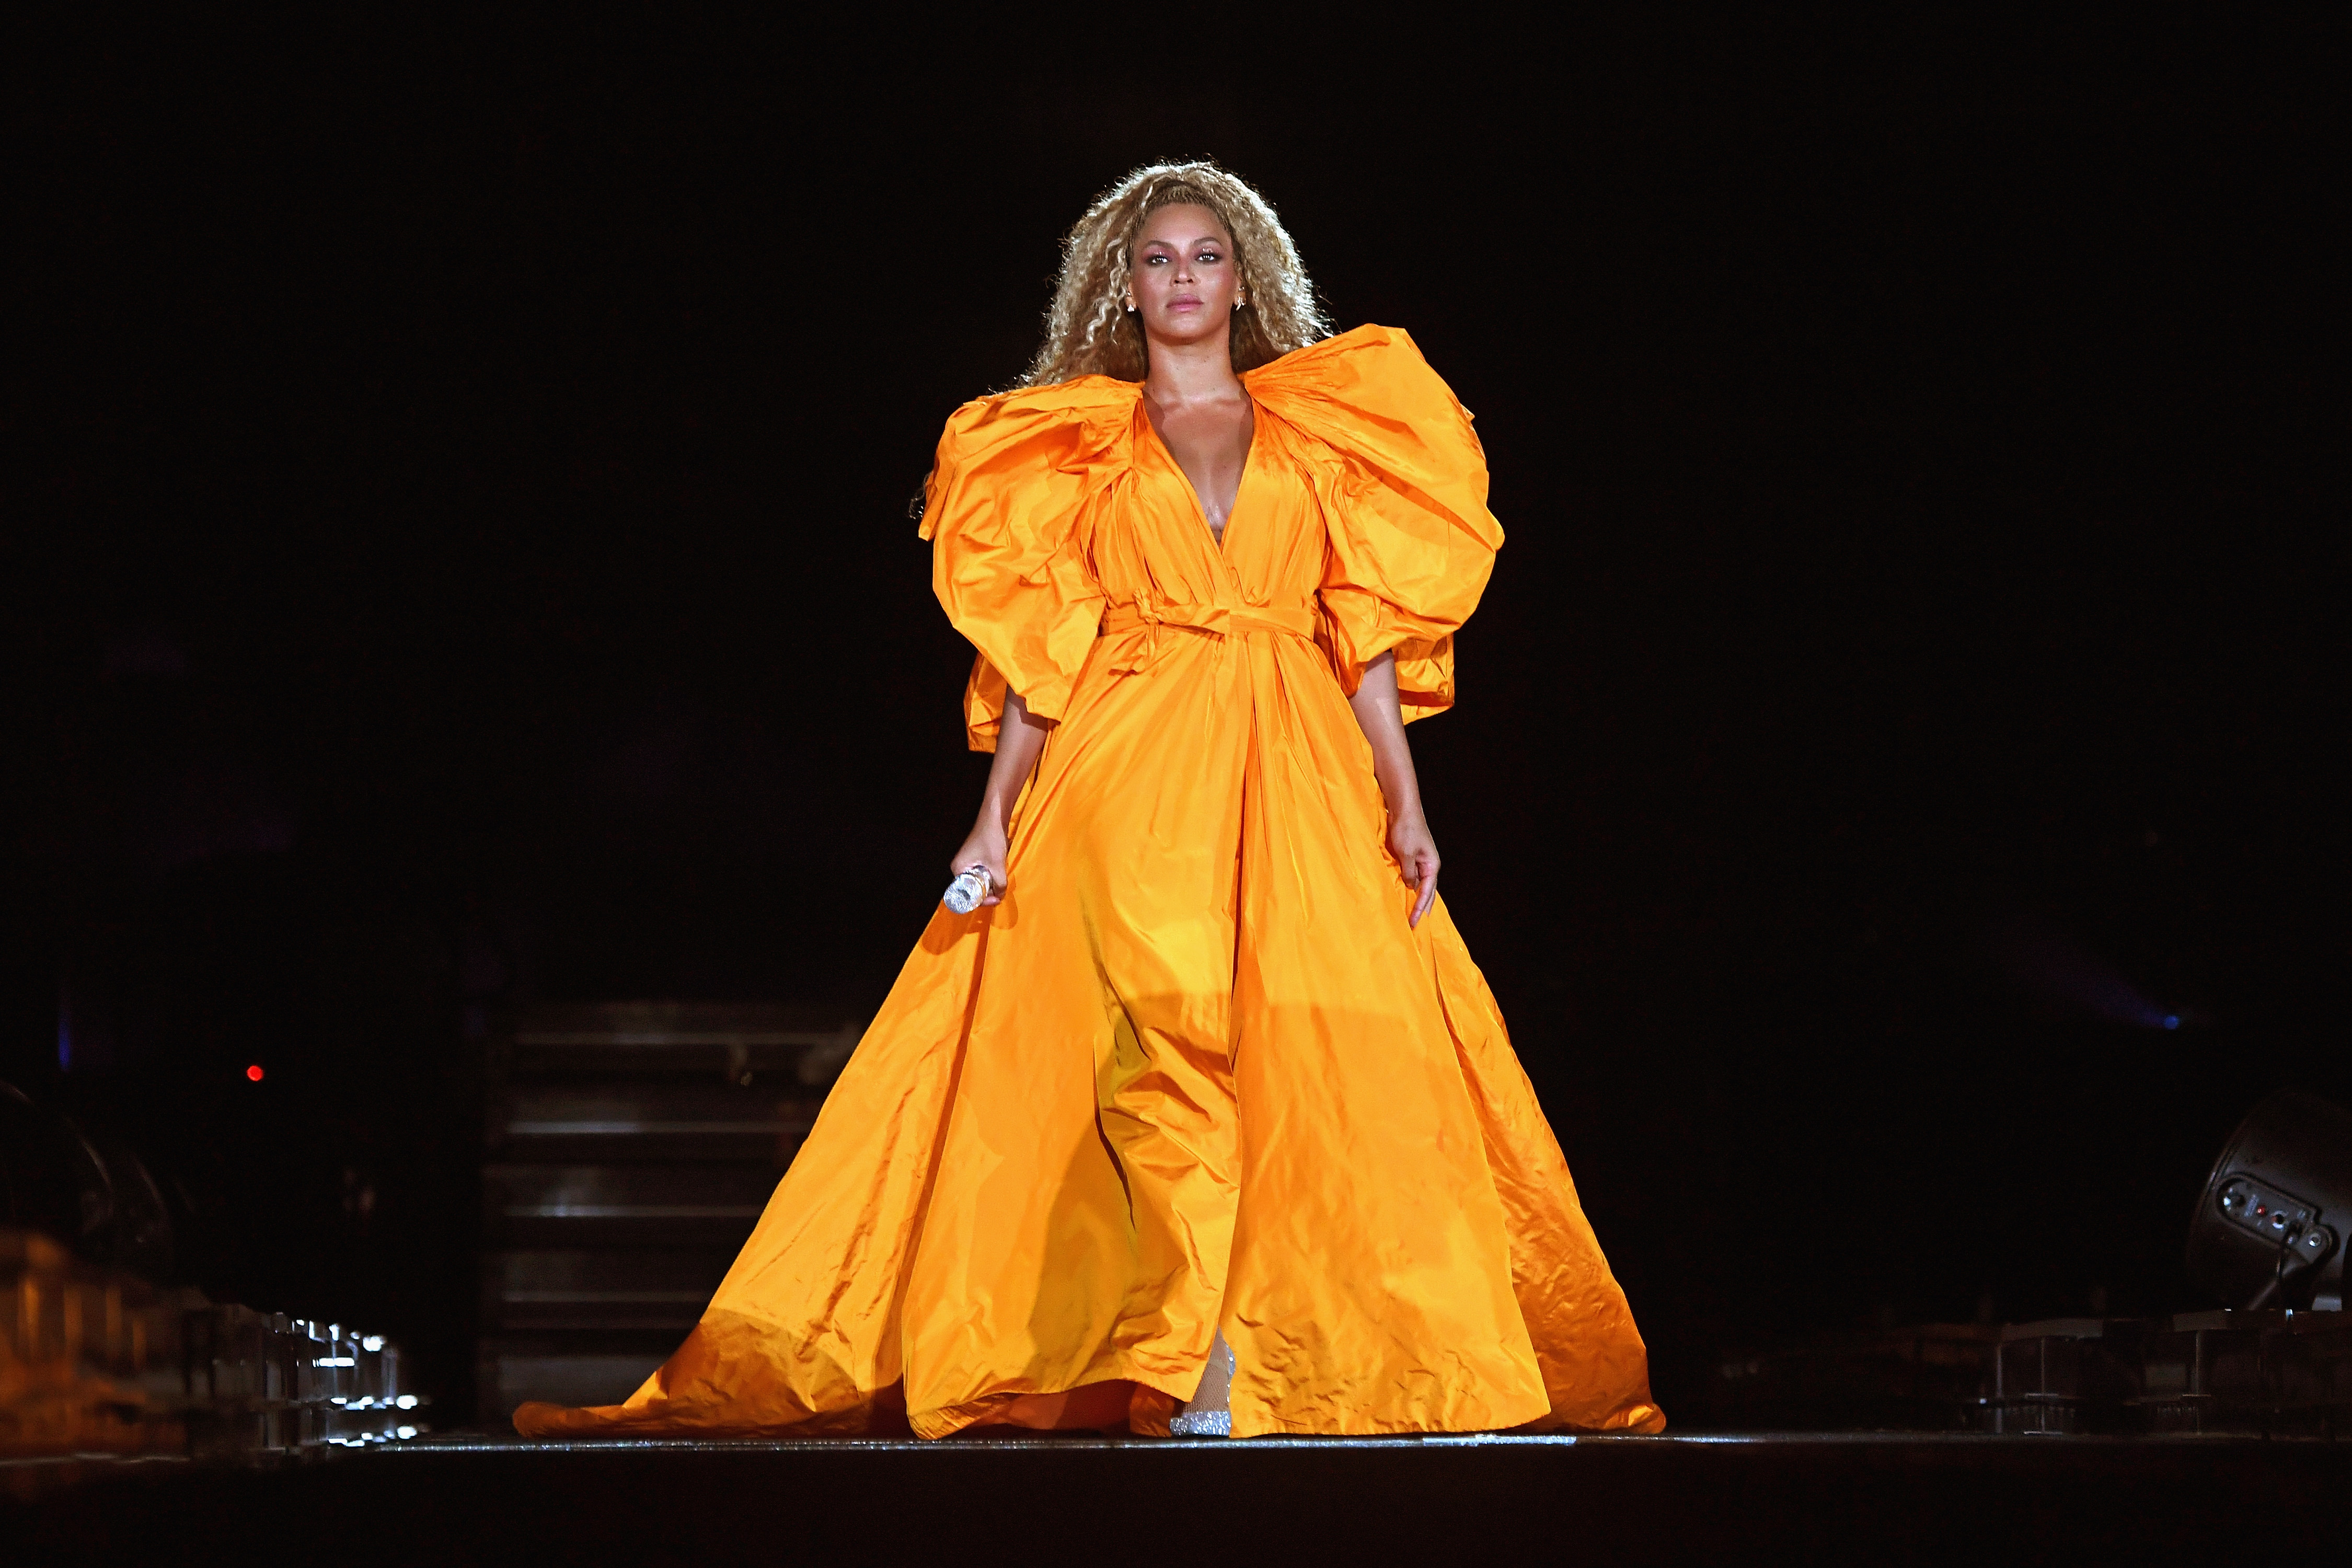 Beyonce performs onstage during the  On The Run II  Tour - New Jersey at MetLife Stadium on August 2, 2018 in East Rutherford, New Jersey.  (Photo by Larry Busacca/PW18/Getty Images for Parkwood Entertainment)